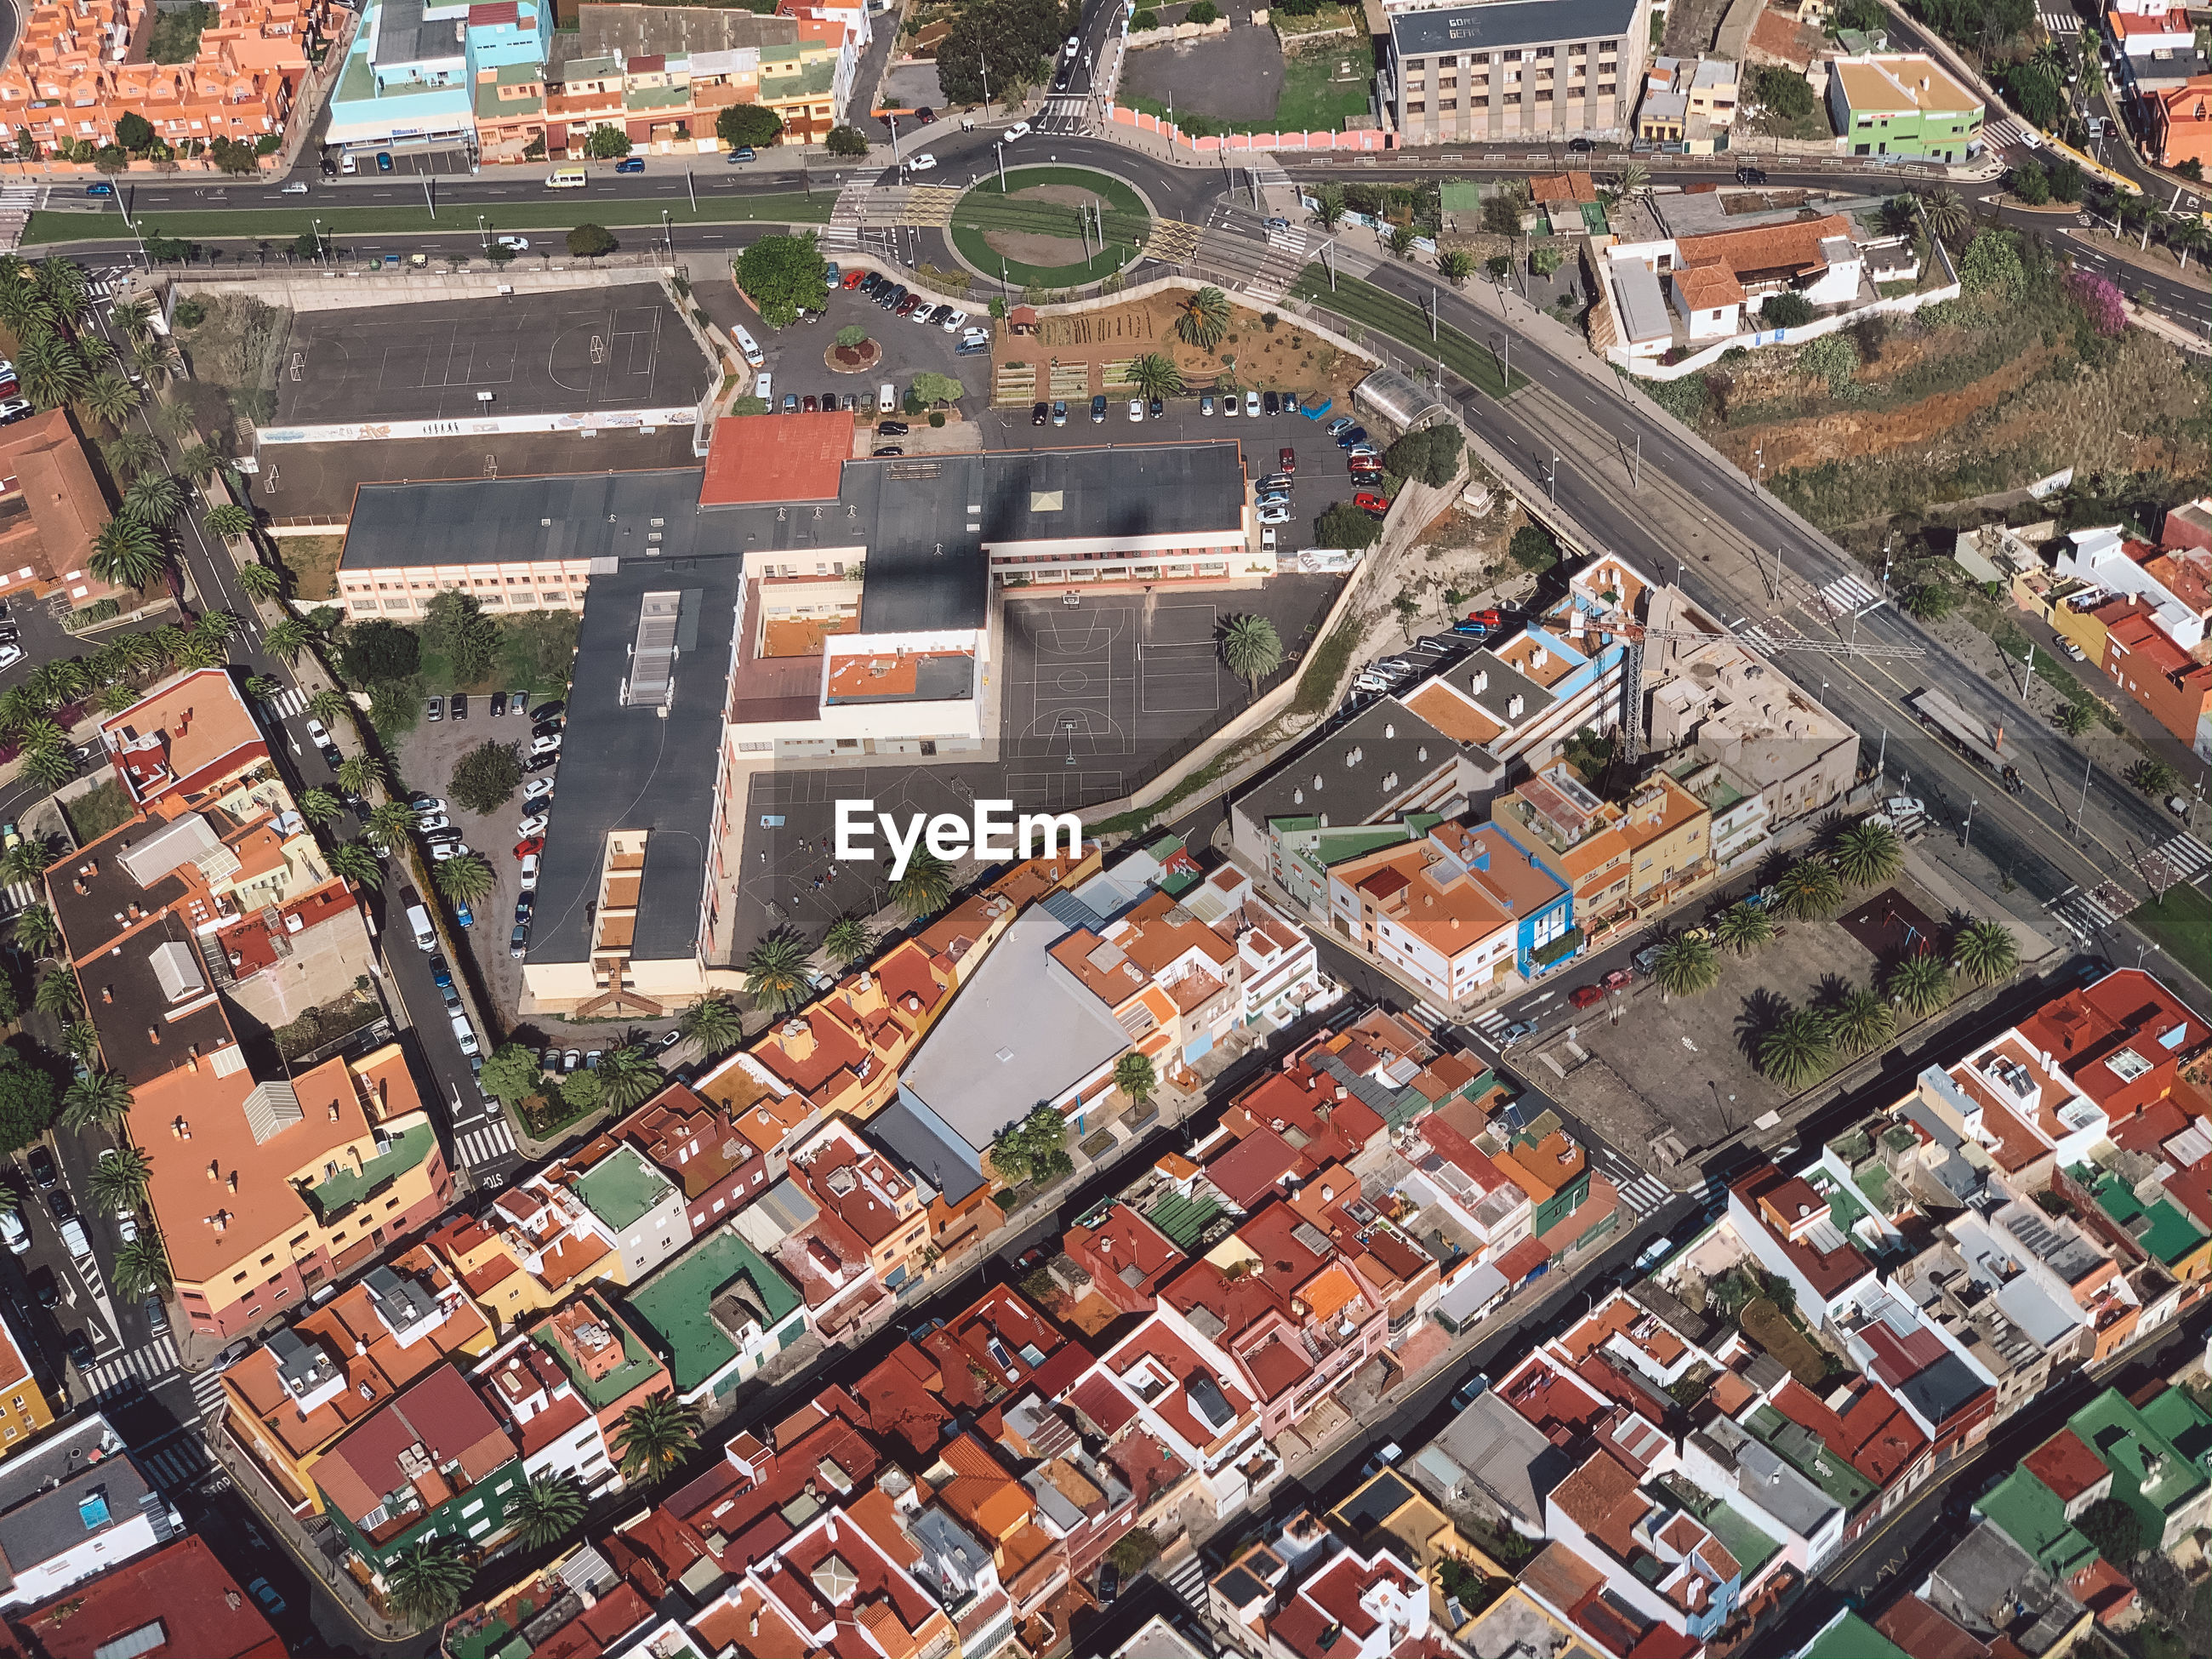 HIGH ANGLE VIEW OF TOWNSCAPE AGAINST CITY